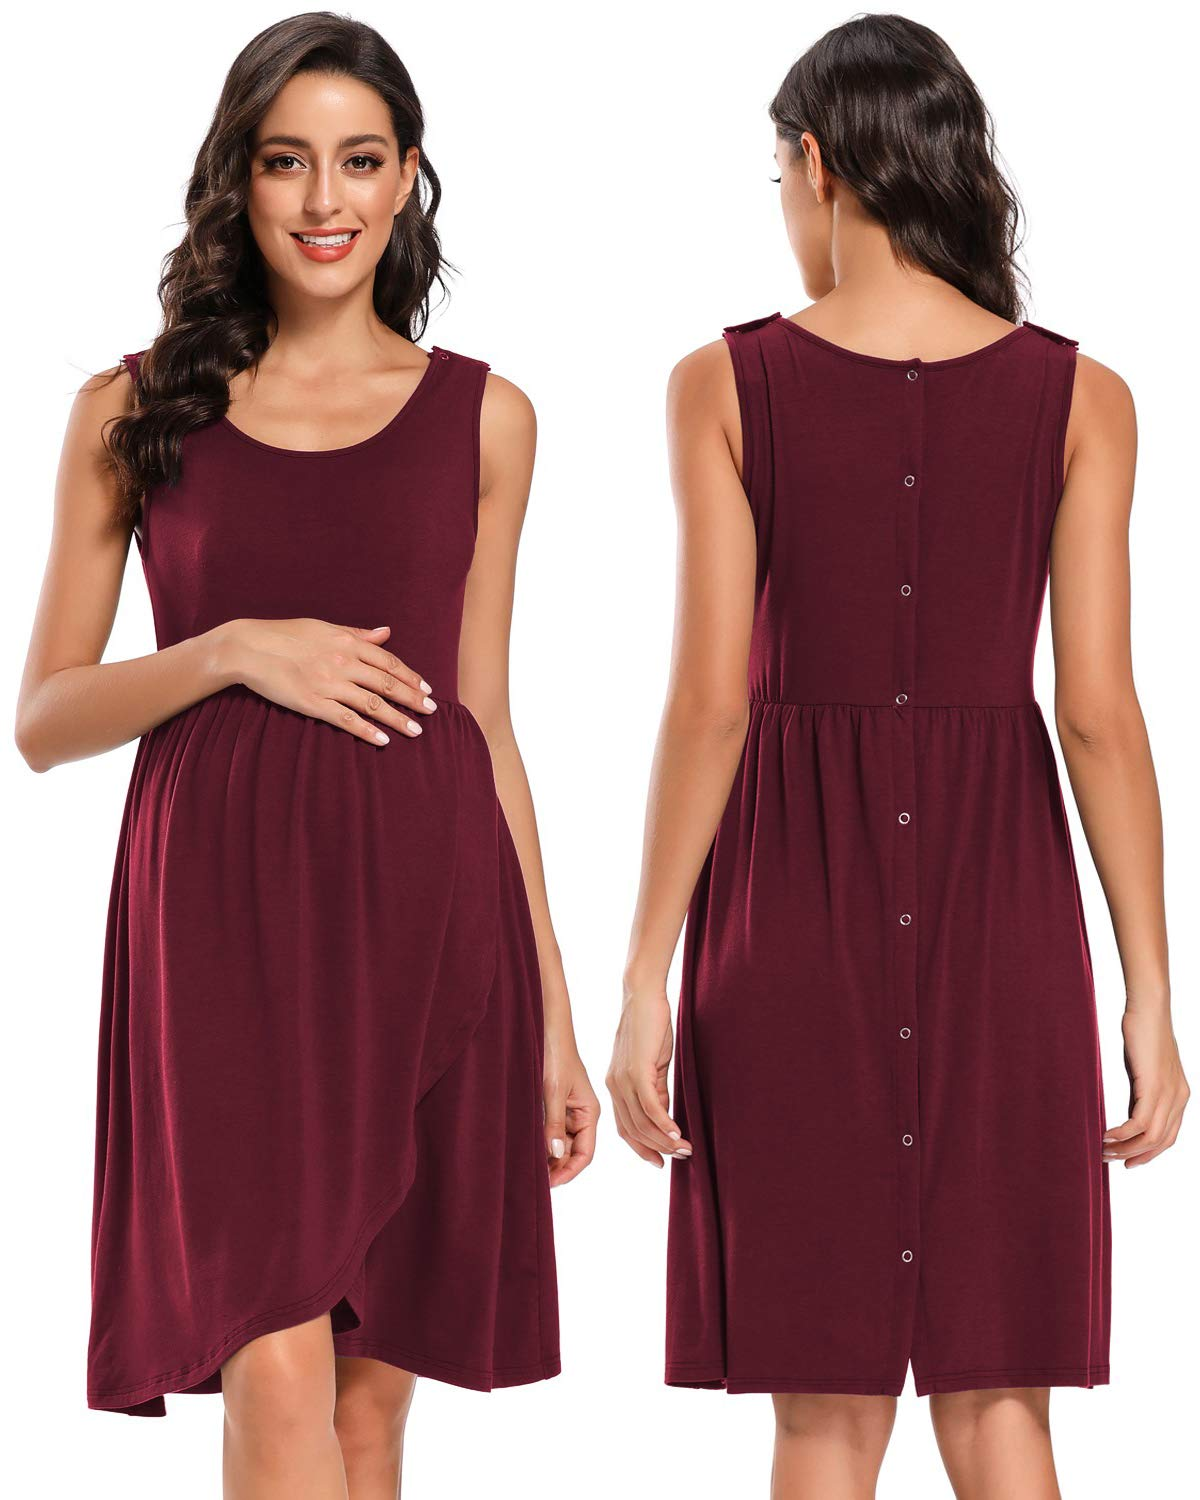 BBHoping Women's 3 in 1 Delivery/Labor/Nursing Nightgown Maternity Hospital Gown/Sleepwear for Breastfeeding